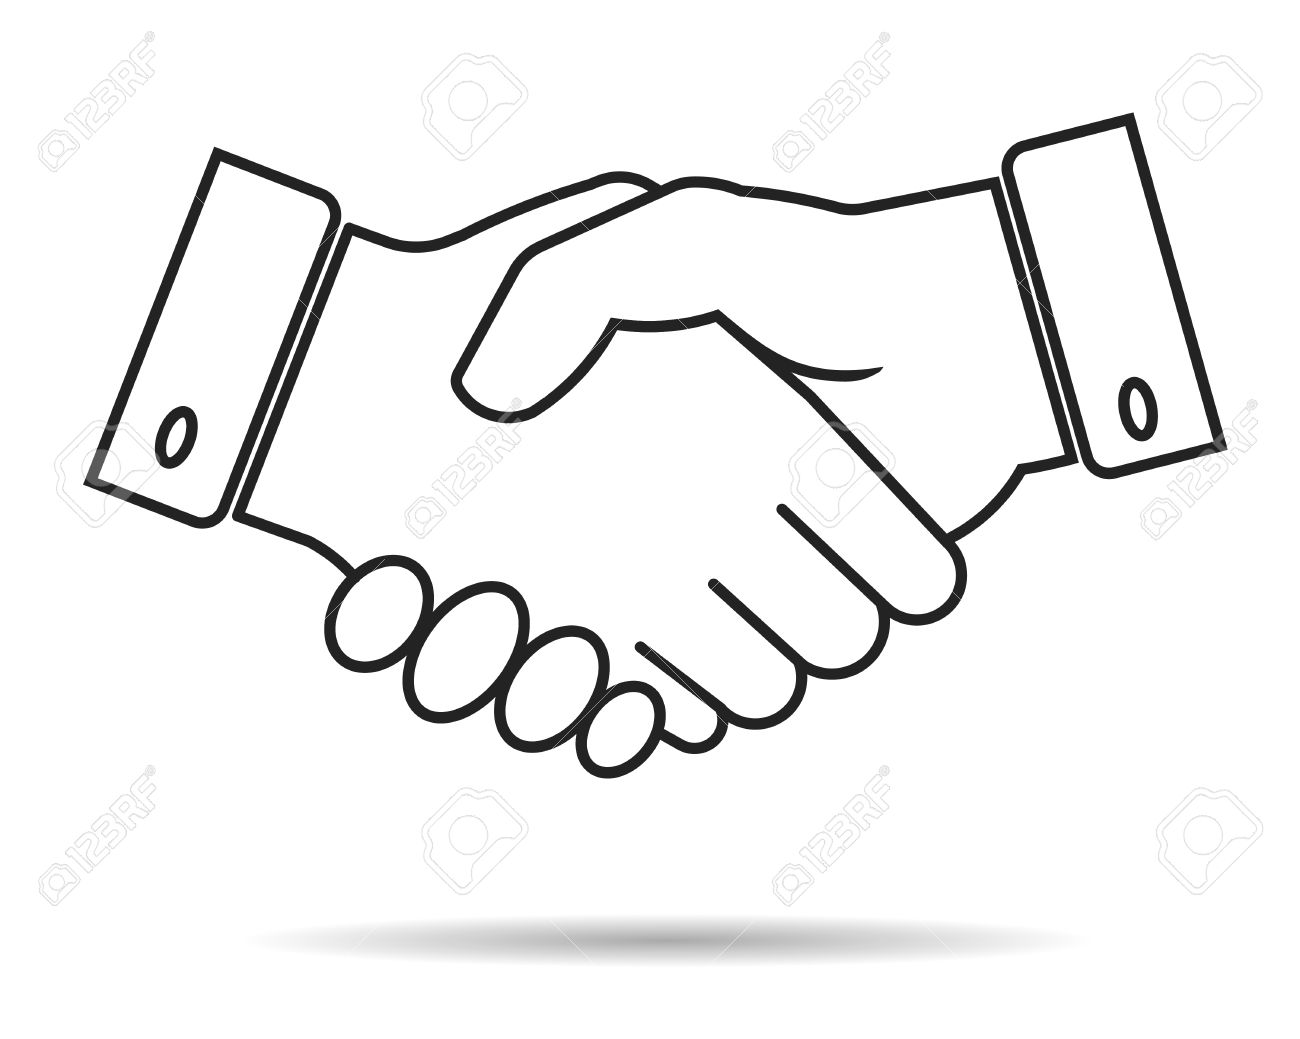 Handshake Contour Icon, Partnership, Business Finance Concept - Vector  Illustration Fully Editable, You Can Change Form And Color Cliparts,  Vector, Và Stock Hình ảnh Minh Họa Miễn Phí Bản Quyền. Image 43662752.